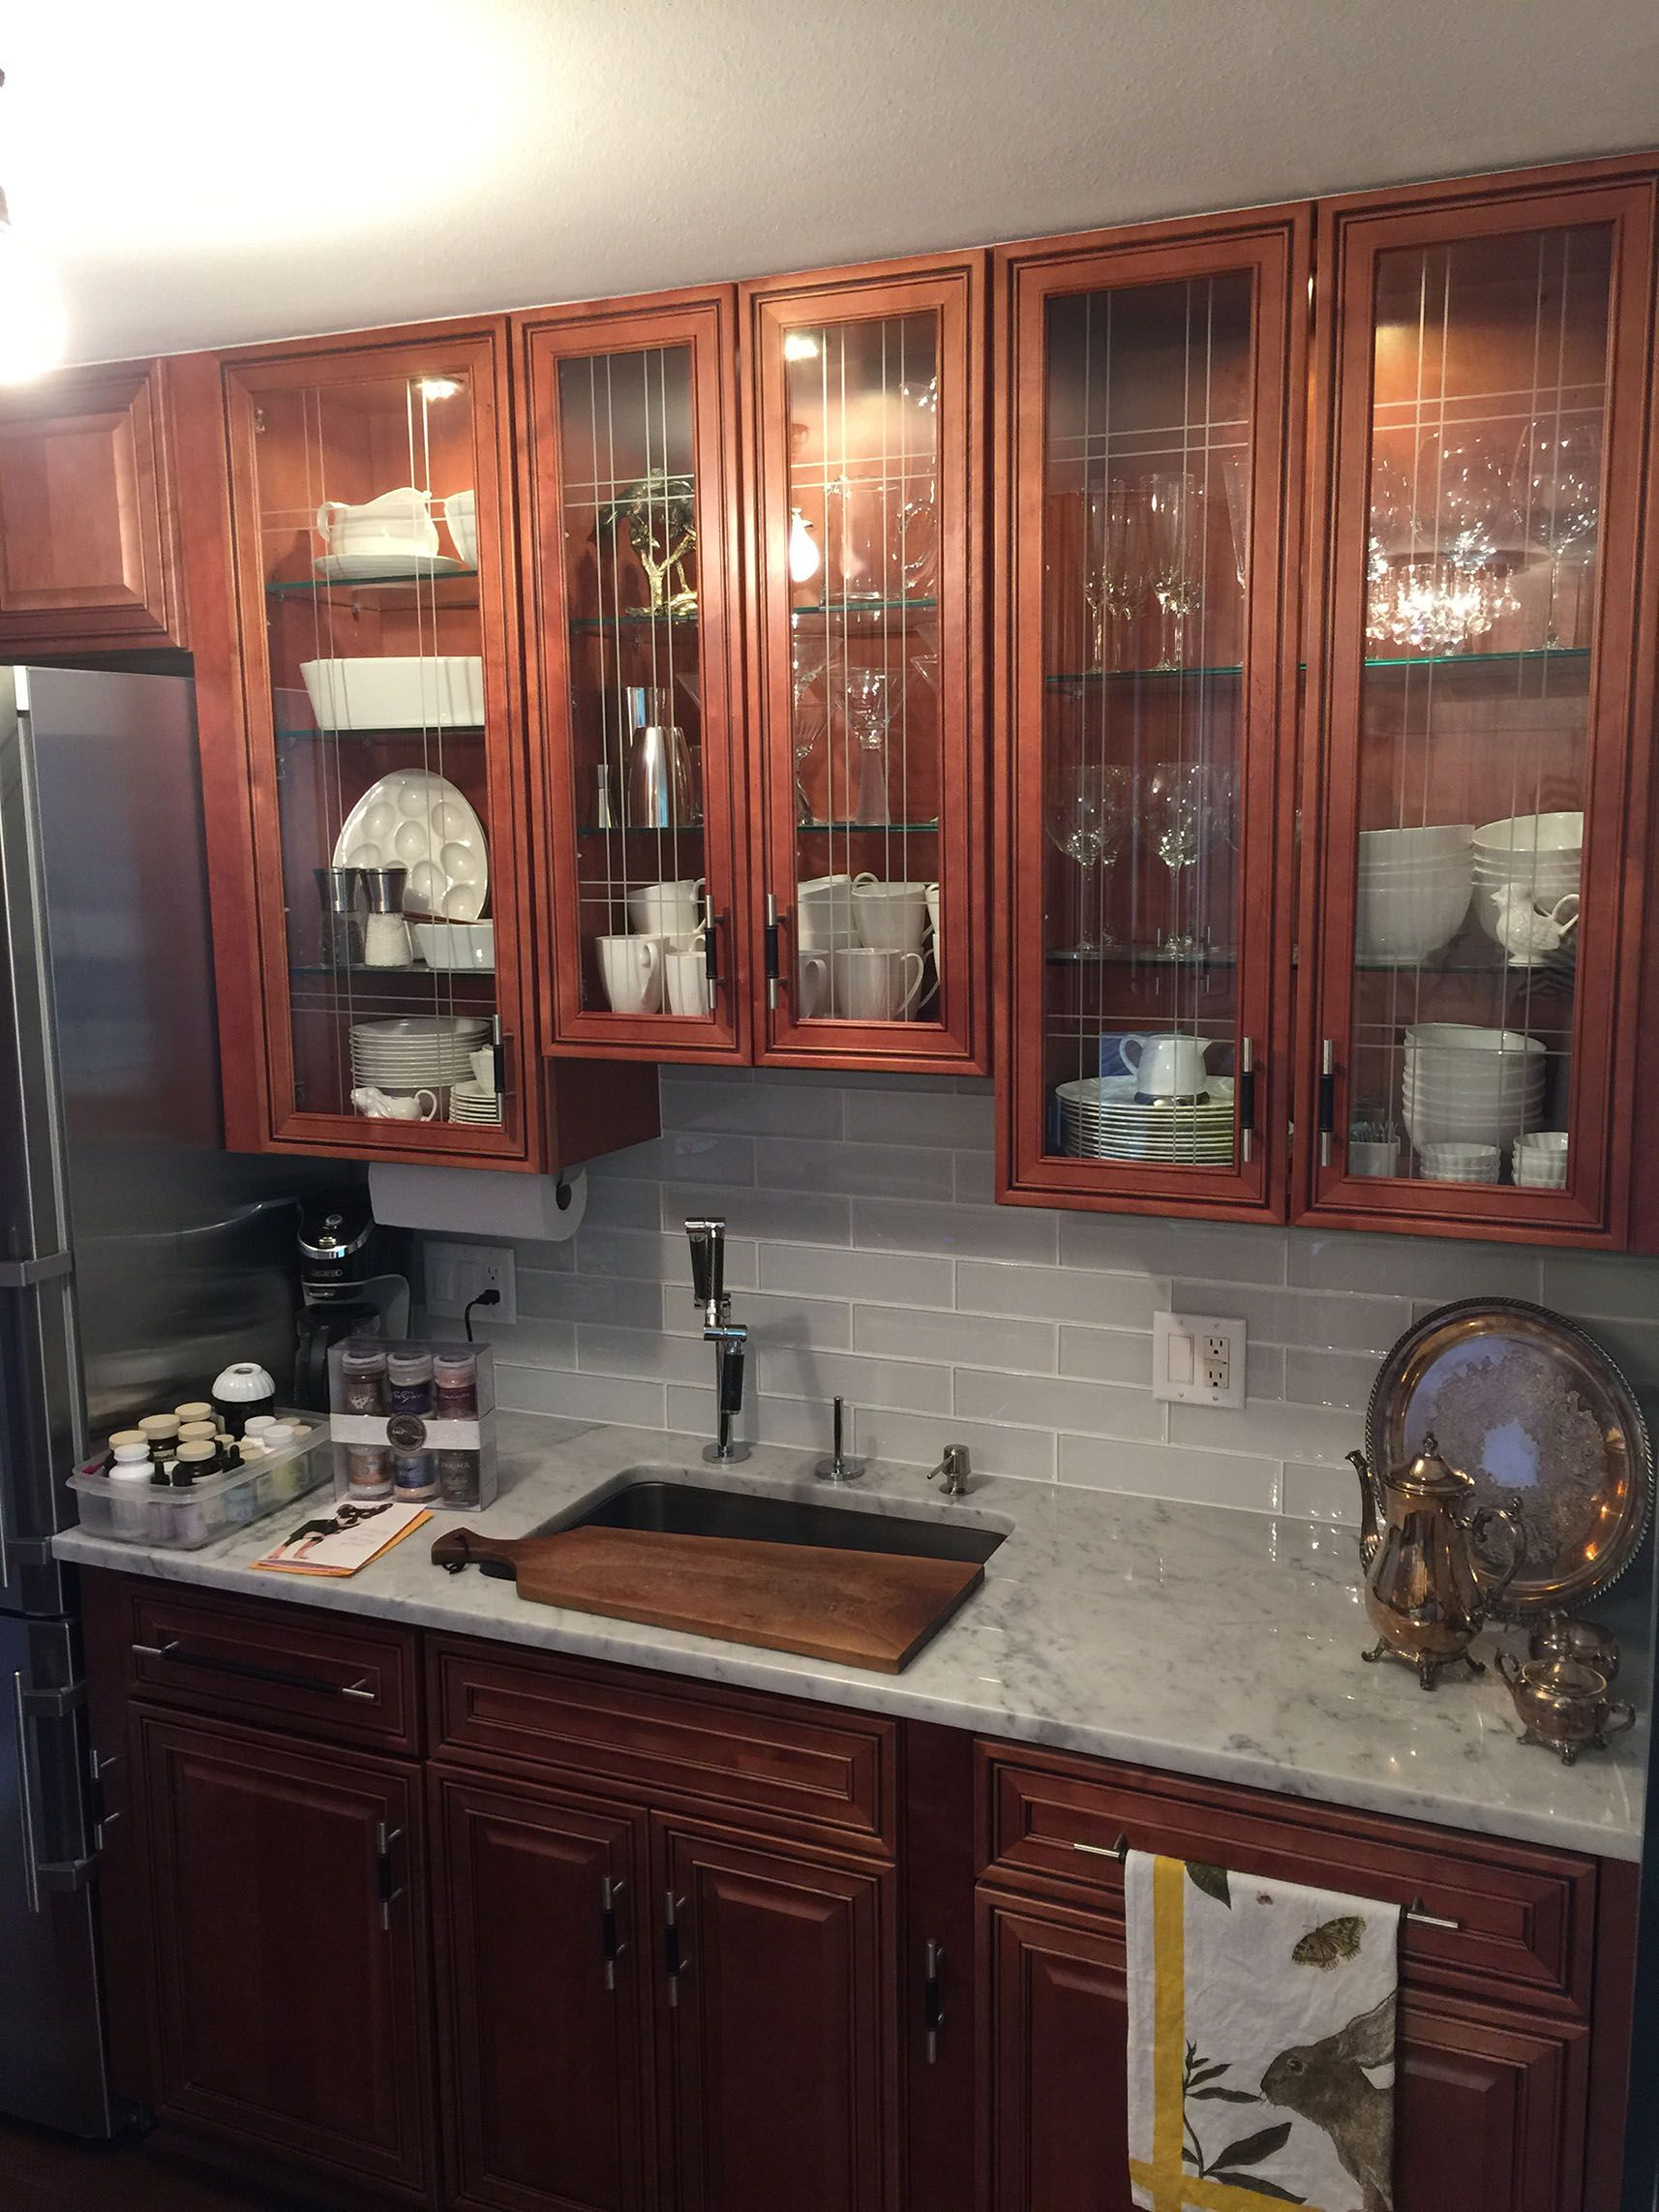 Glass doors | Solid wood cabinets, Cabinet, Kitchen